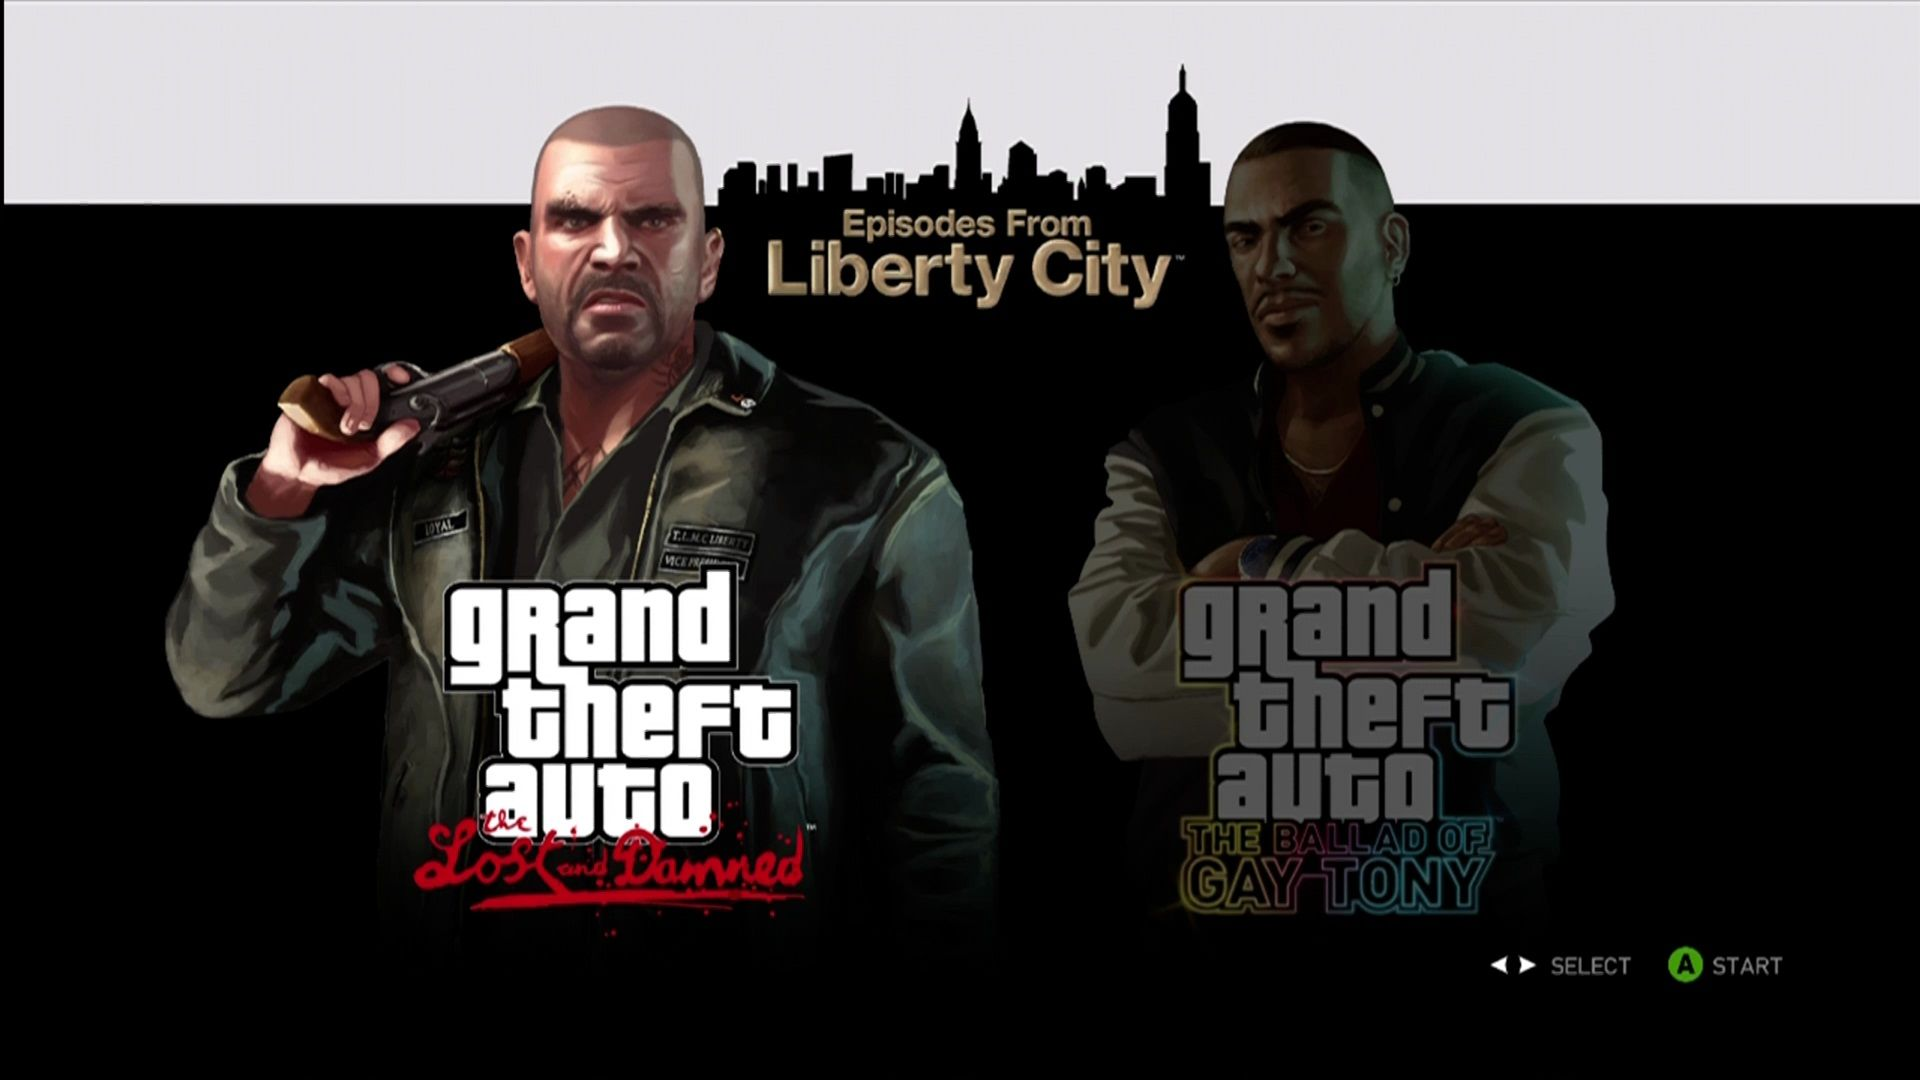 Grand Theft Auto: Episodes from Liberty City Xbox 360 Insert the disc and pick a DLC to play.